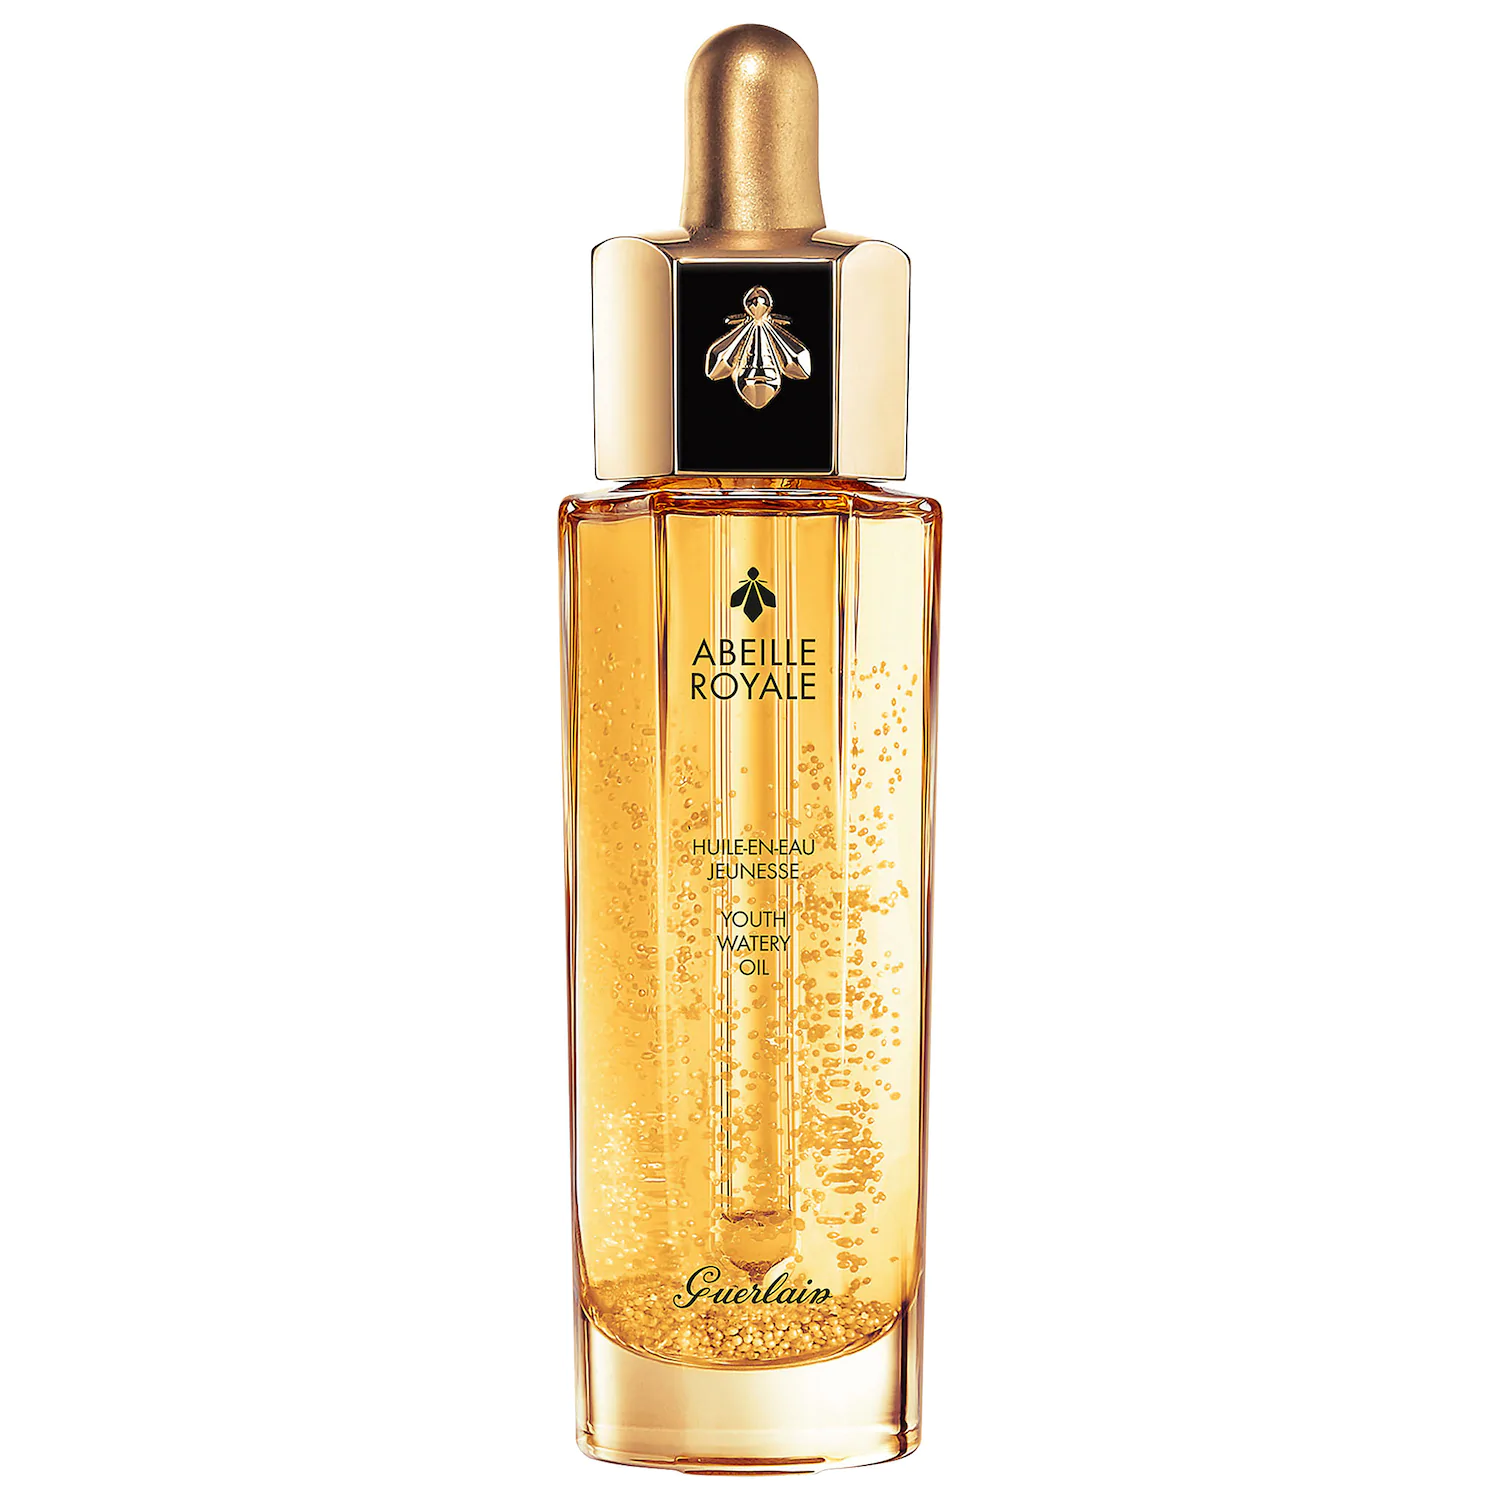 Guerlain- Abeille Royale Youth Watery Anti-Aging Oil- 10,950